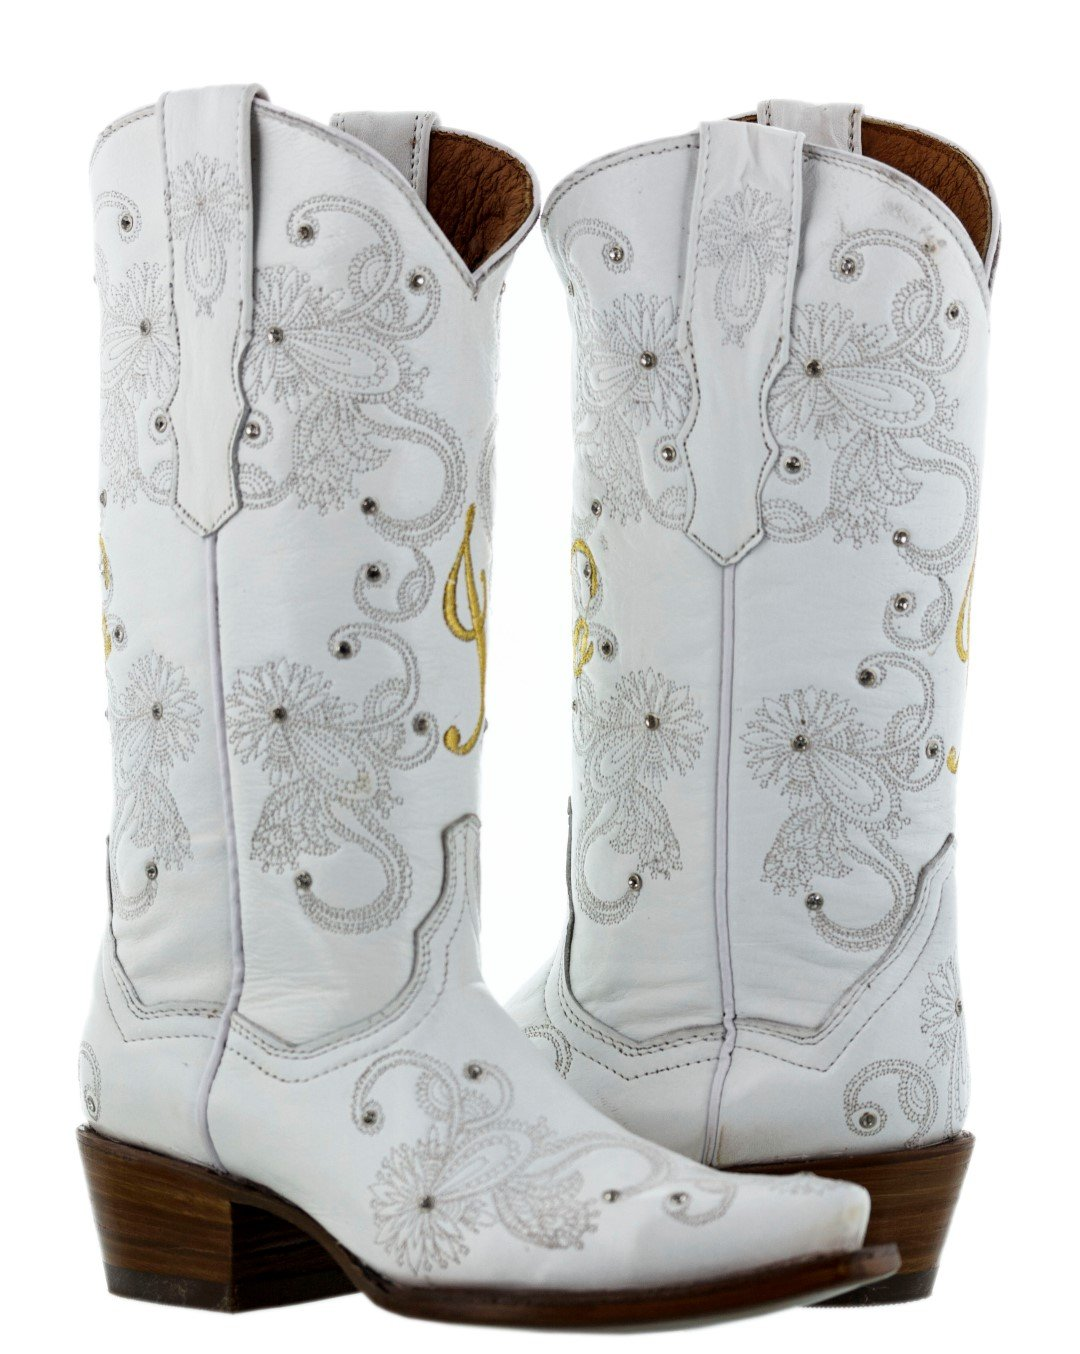 Cowboy Professional - Womens I Do White Gold Western Wedding Cowboy Boots Snip 8.5 BM